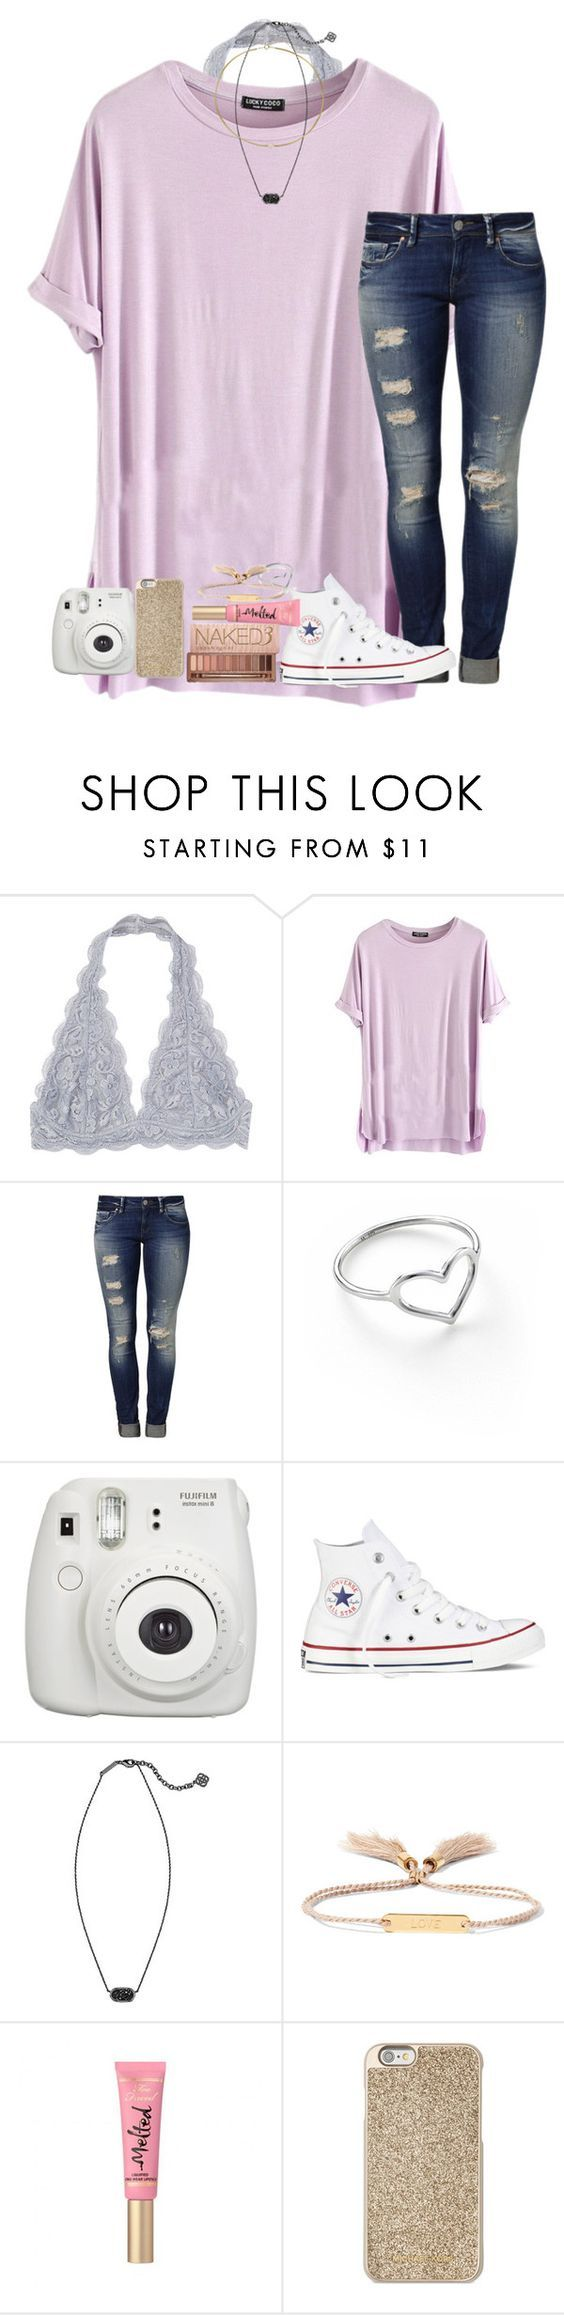 """you light me up inside"" by kyliegrace ❤ liked on Polyvore featuring beauty, Mavi, Jordan Askill, Fujifilm, Converse, Kendra Scott, Chloé, Michael Kors, Dogeared and Urban Decay"